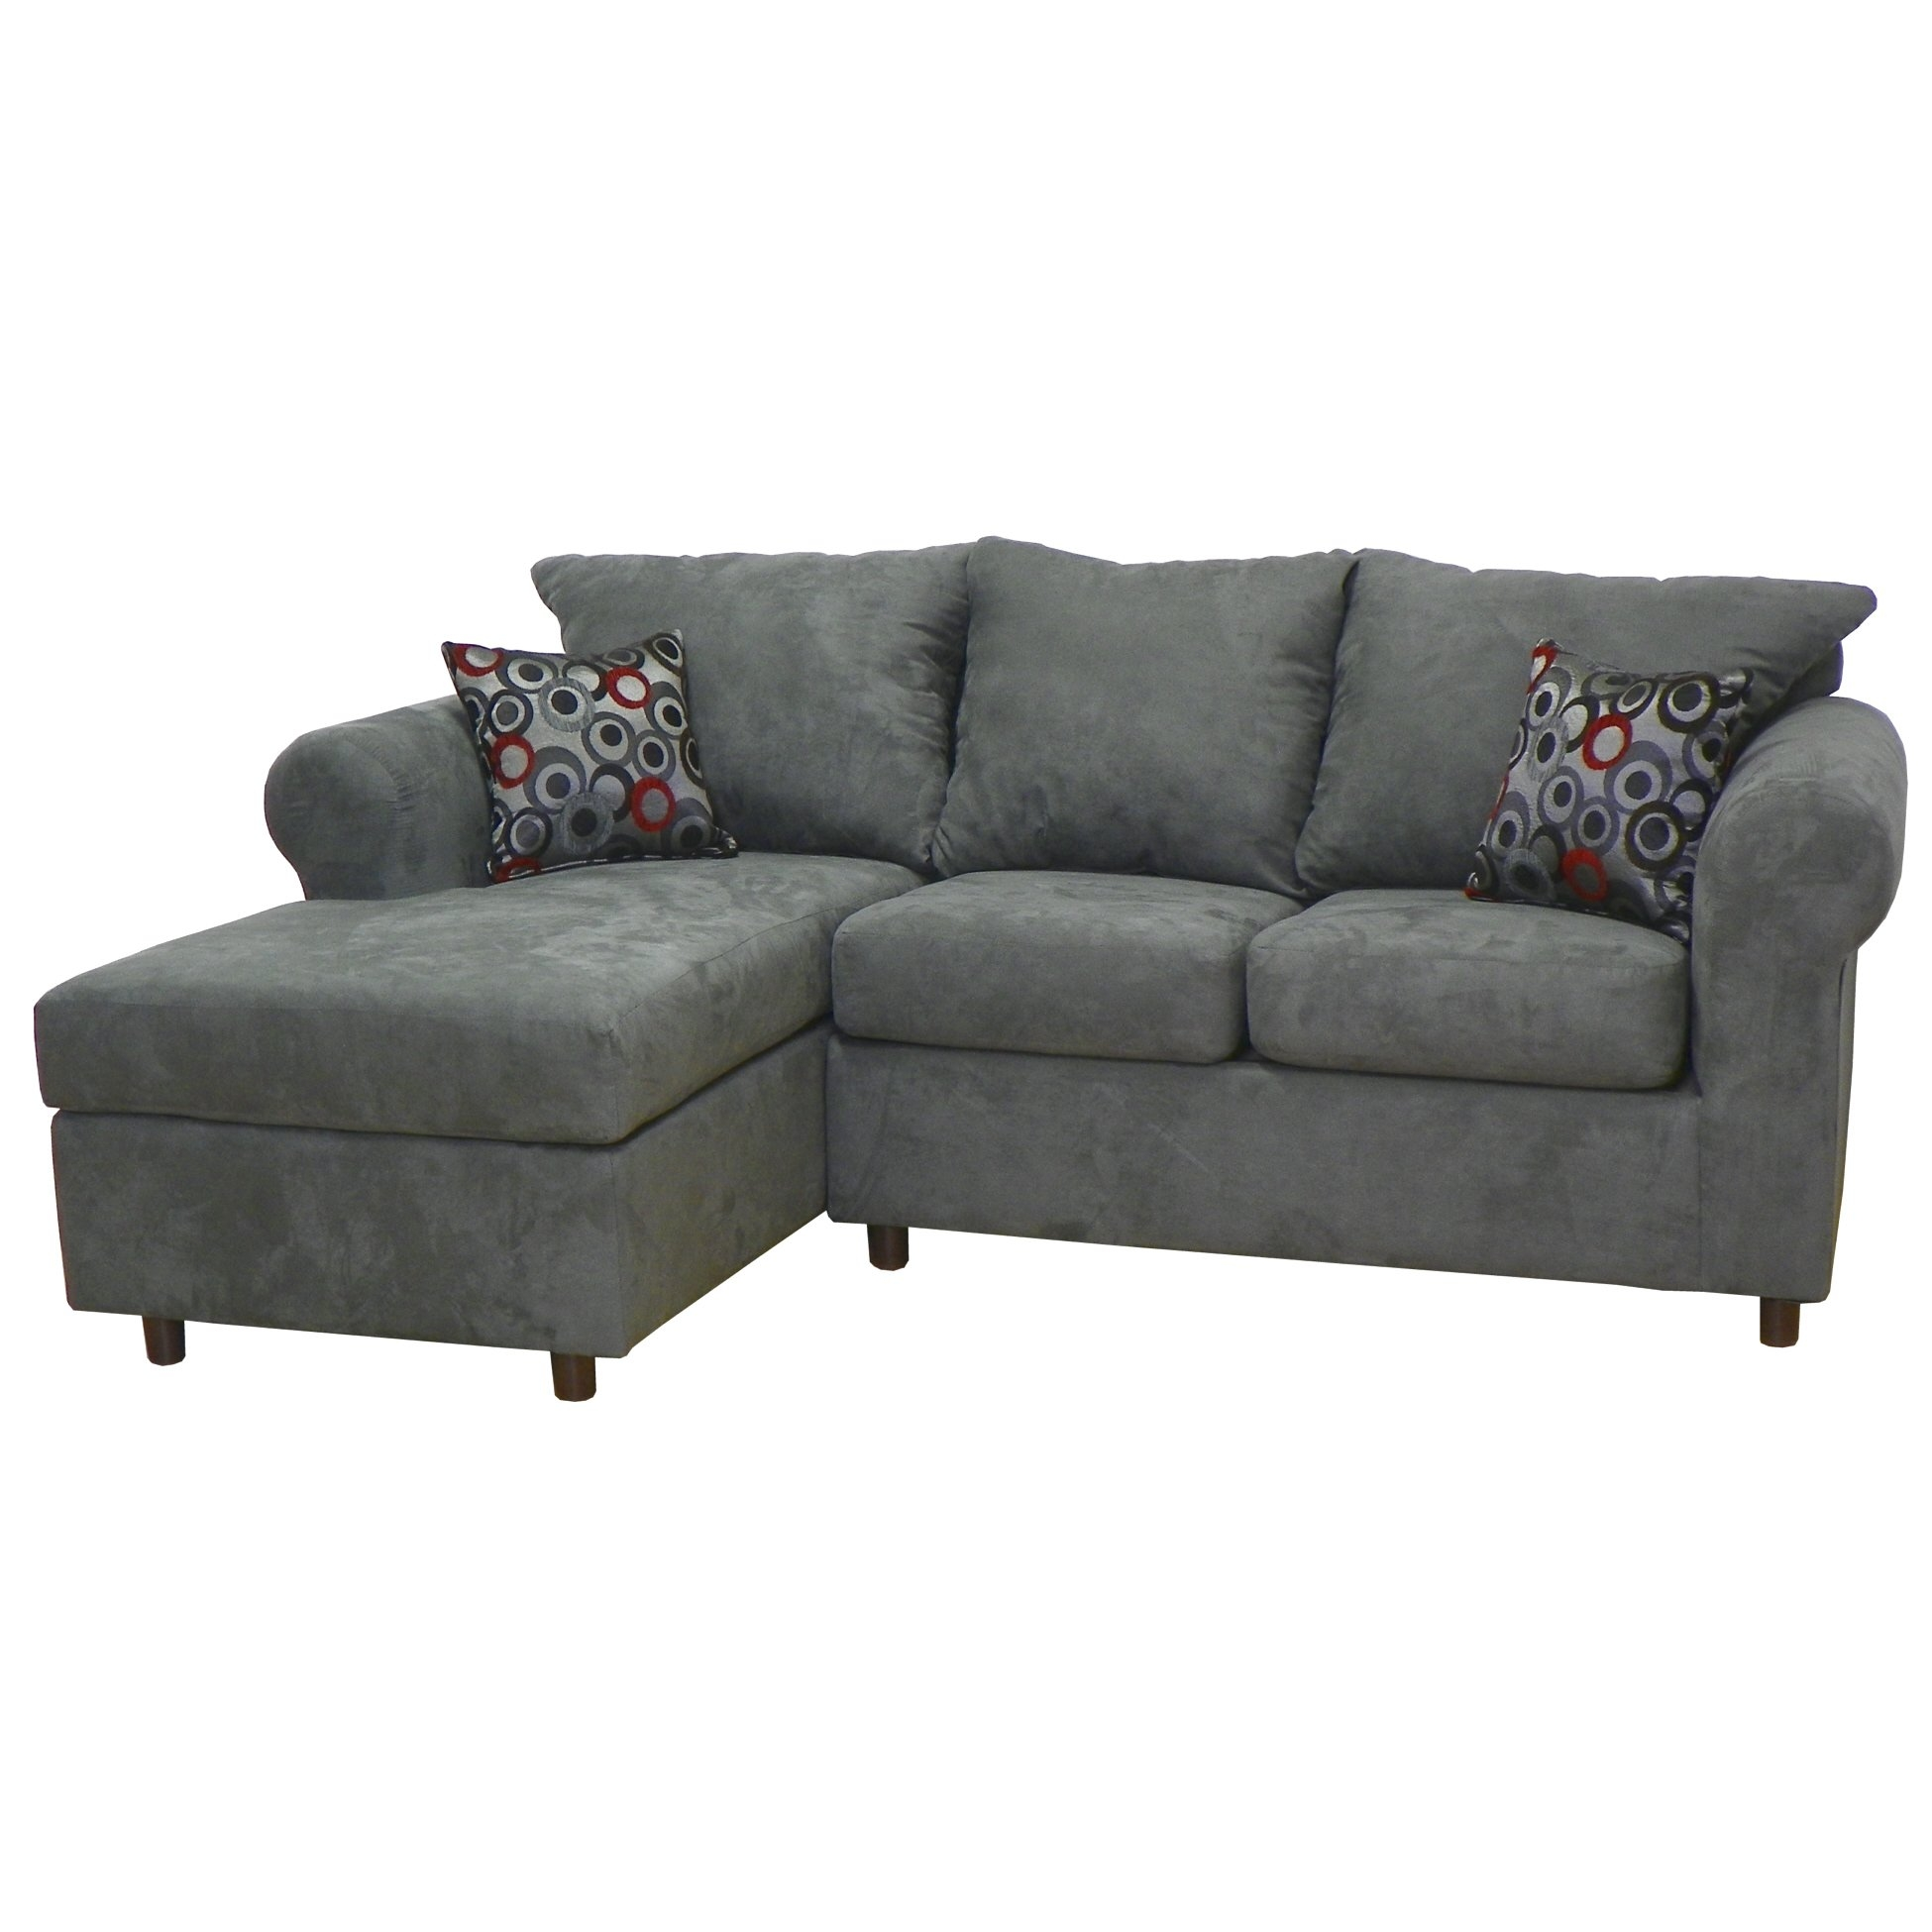 Sectional Sofas Youll Love Wayfair With Compact Sectional Sofas (Image 12 of 15)